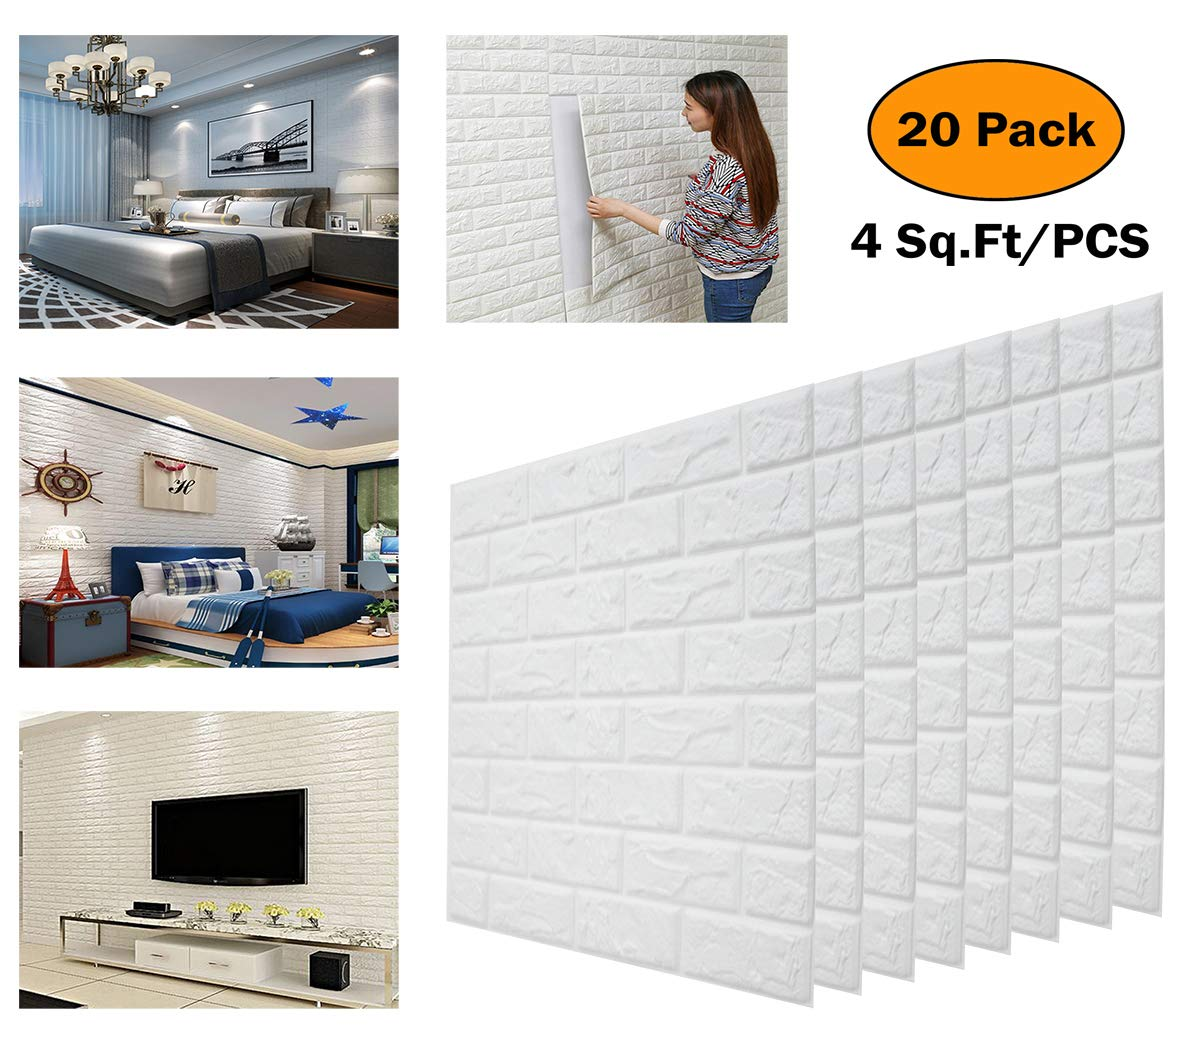 20pcs 3D Brick Wall Stickers Self-adhesive Wallpaper White Faux Brick Textured Effect Background for Wall Decoration